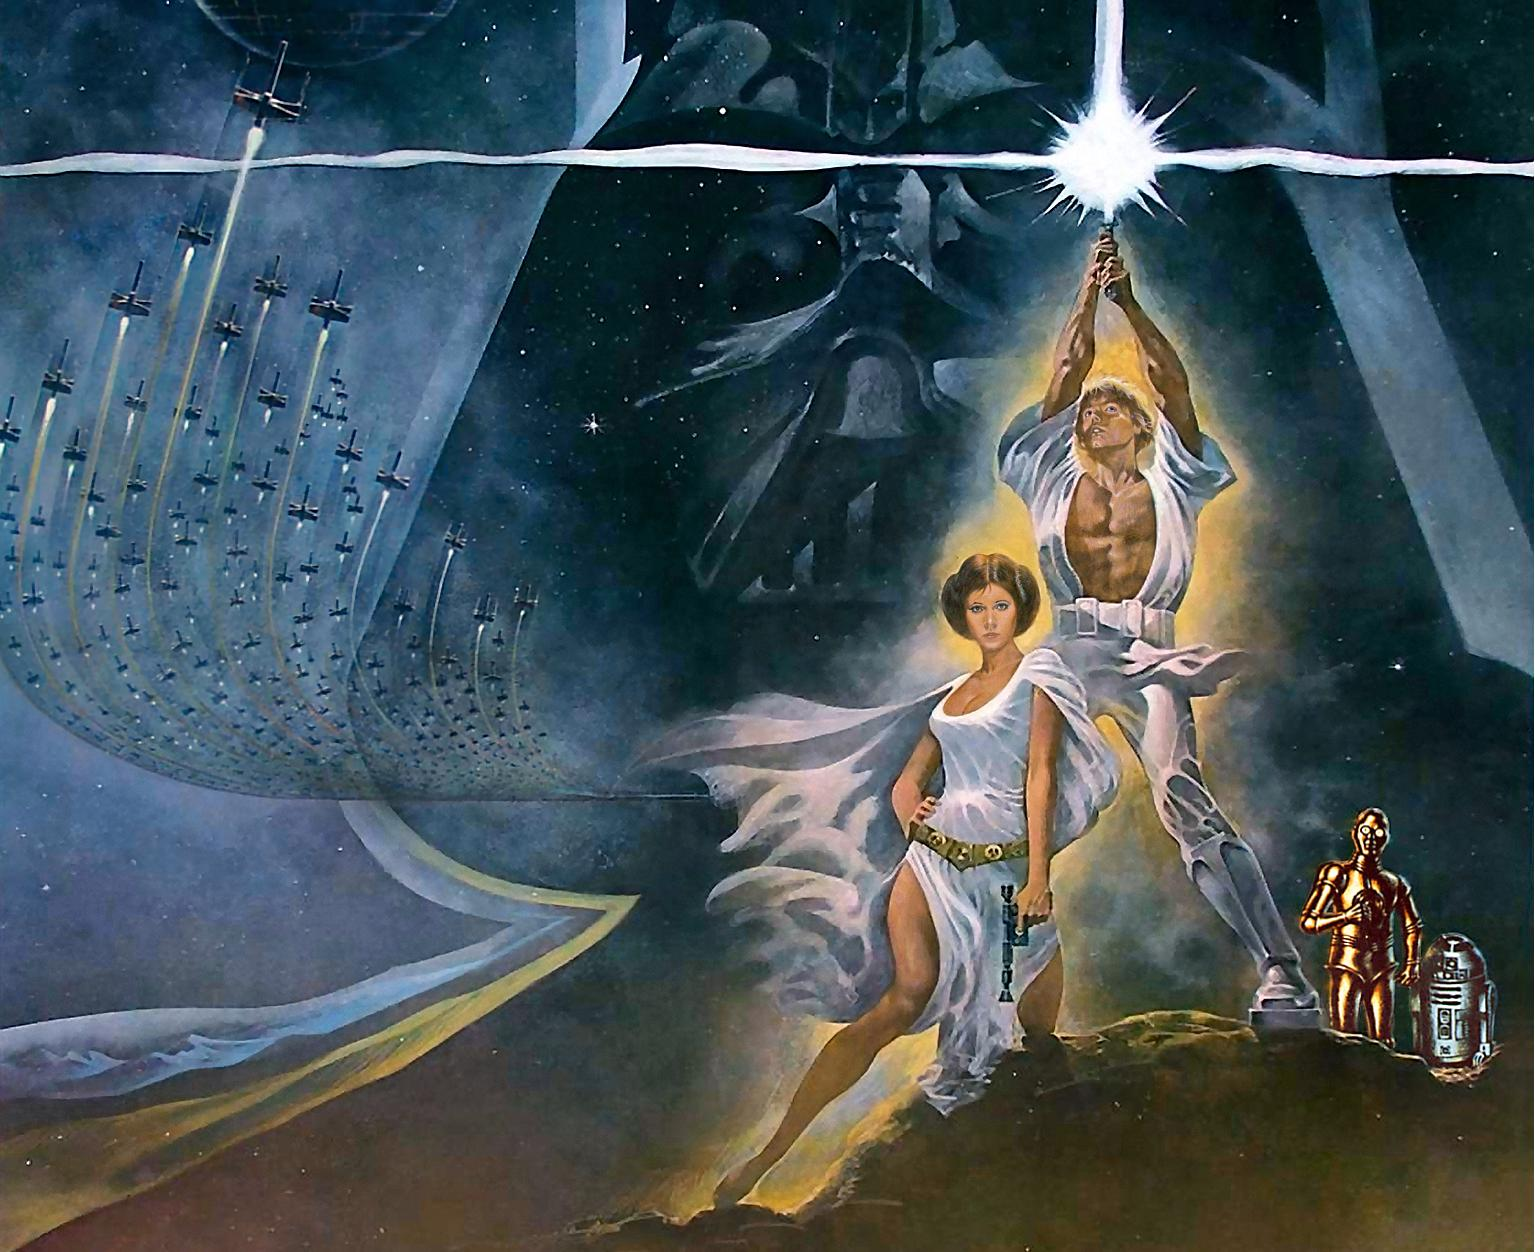 Star Wars Episode IV – A New Hope Wallpaper 1